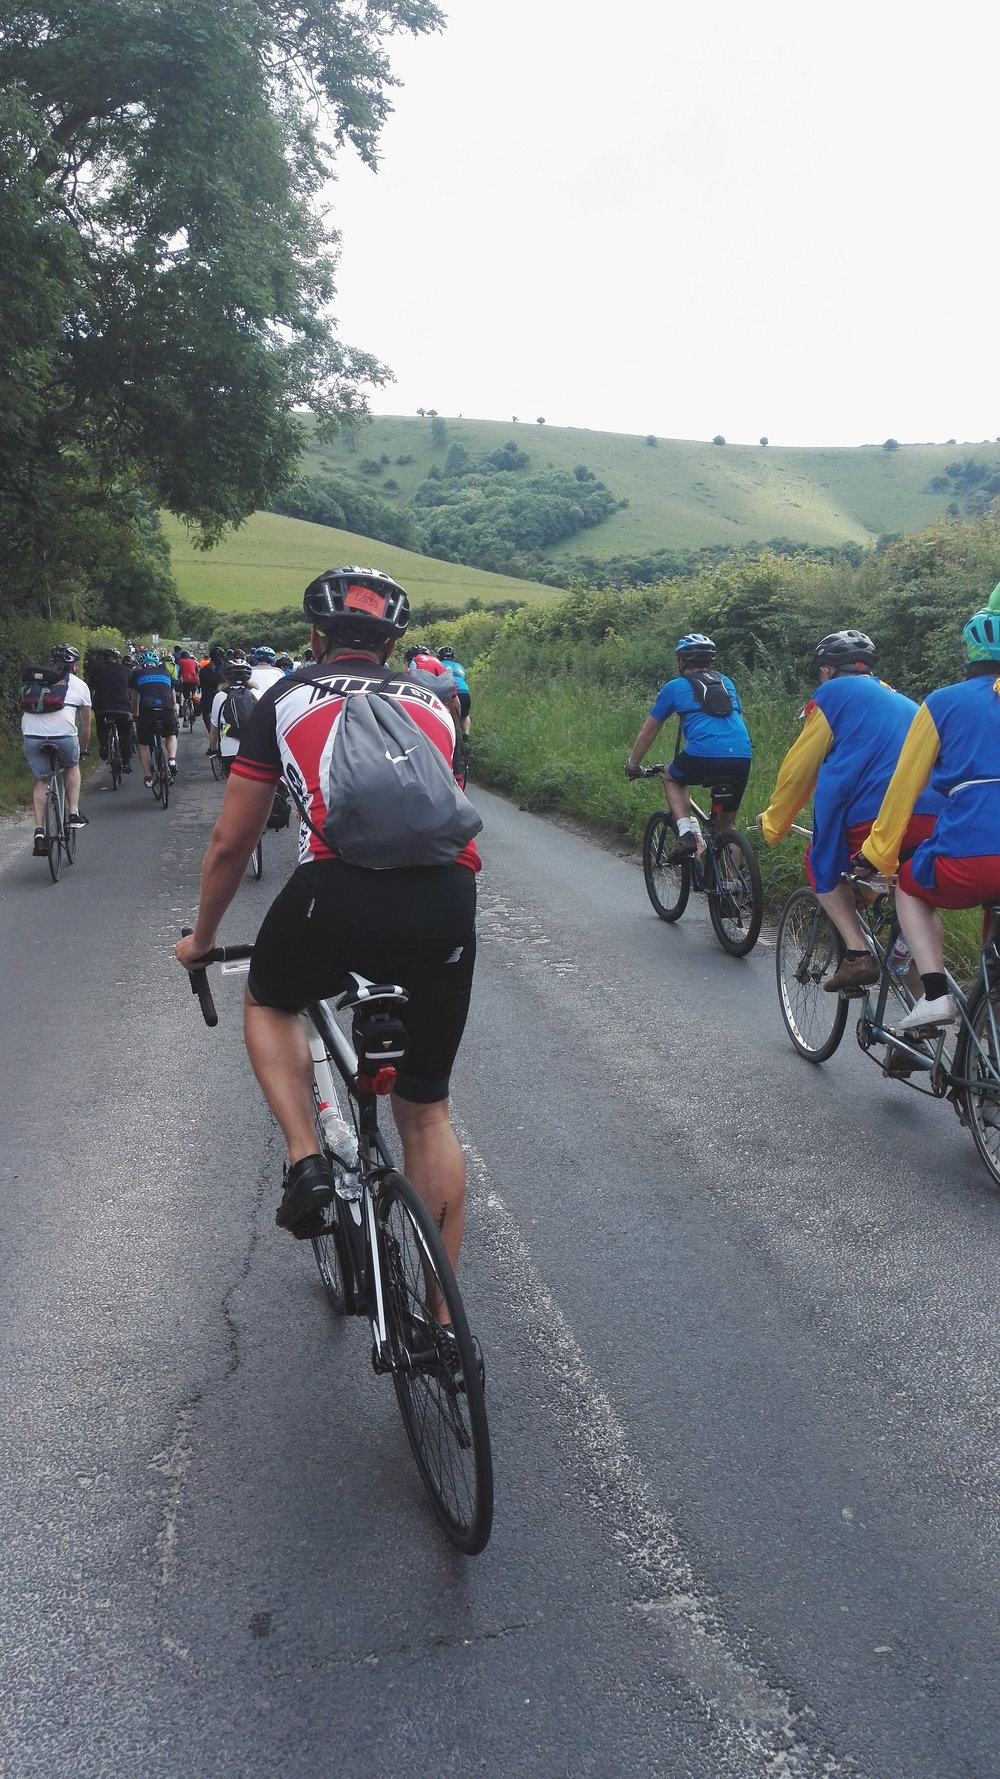 Lots of like minded cyclists making their way up the 814 ft high Ditchling Beacon